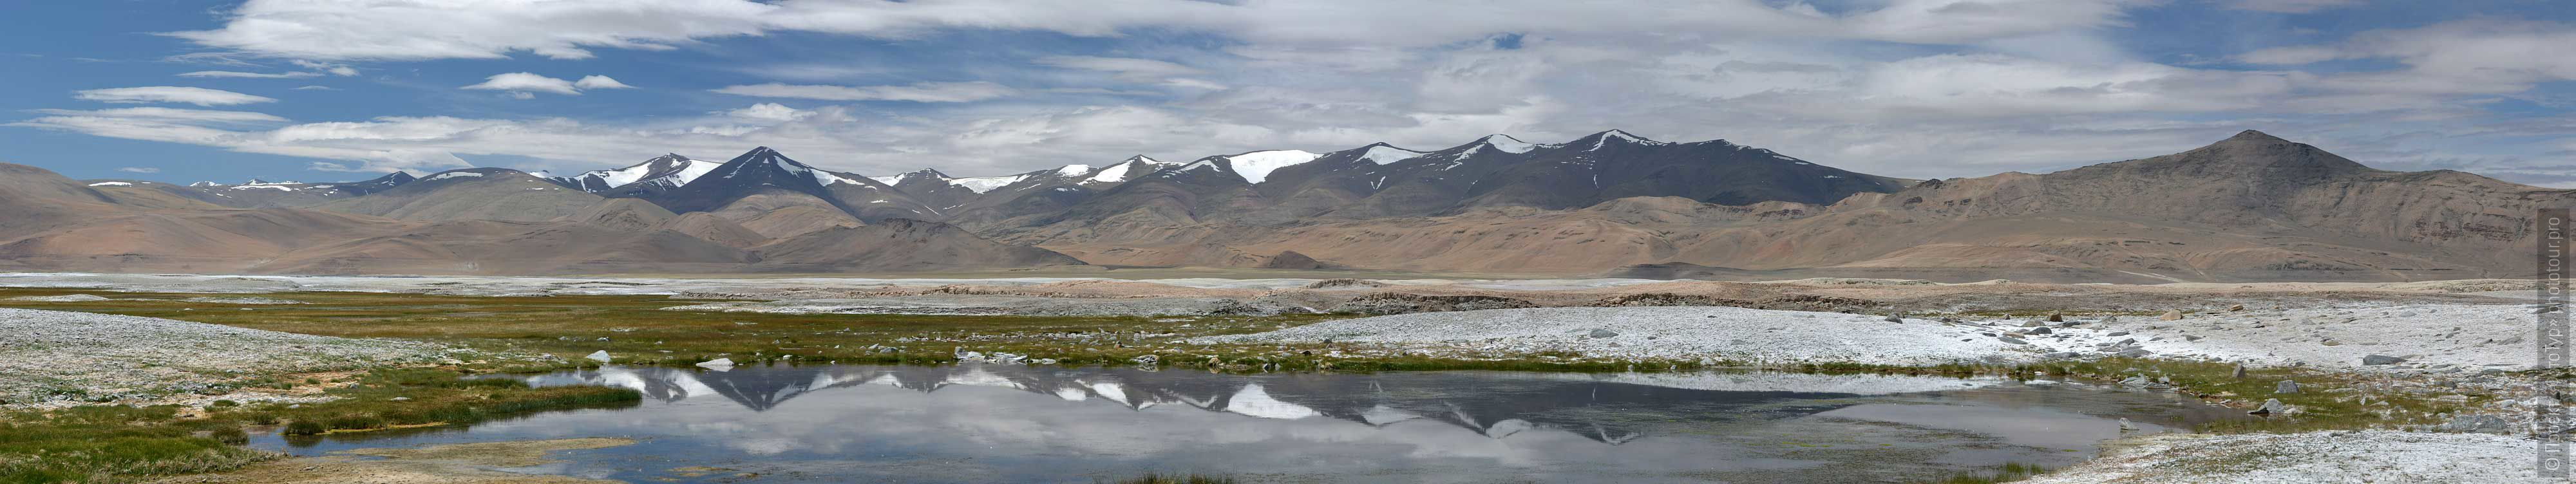 Lake Tso Kar, Ladakh. Tour Tibet Lakeside Advertising: Alpine lakes, geyser valley, Lamayuru, Colored Mountains, 01 - 10.09. 2021 year.